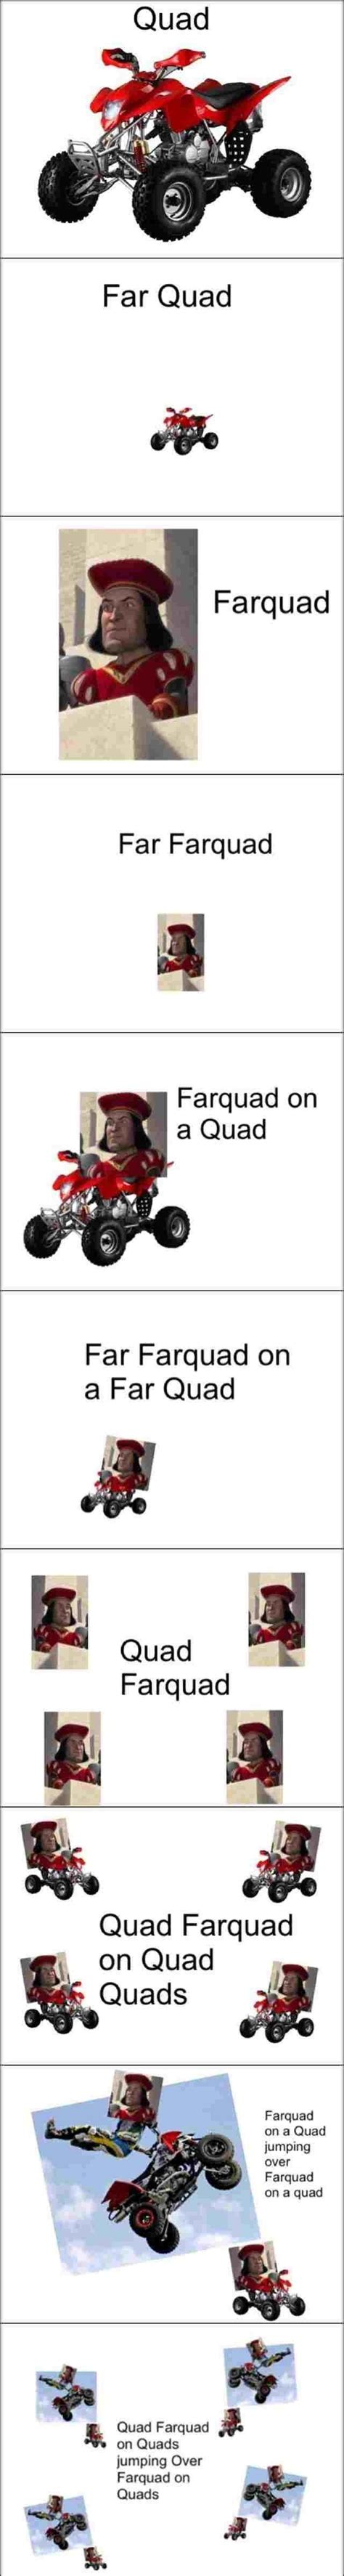 Quad Memes - ok so my friend has the the same haircut as farquad and we have this inside joke about her being